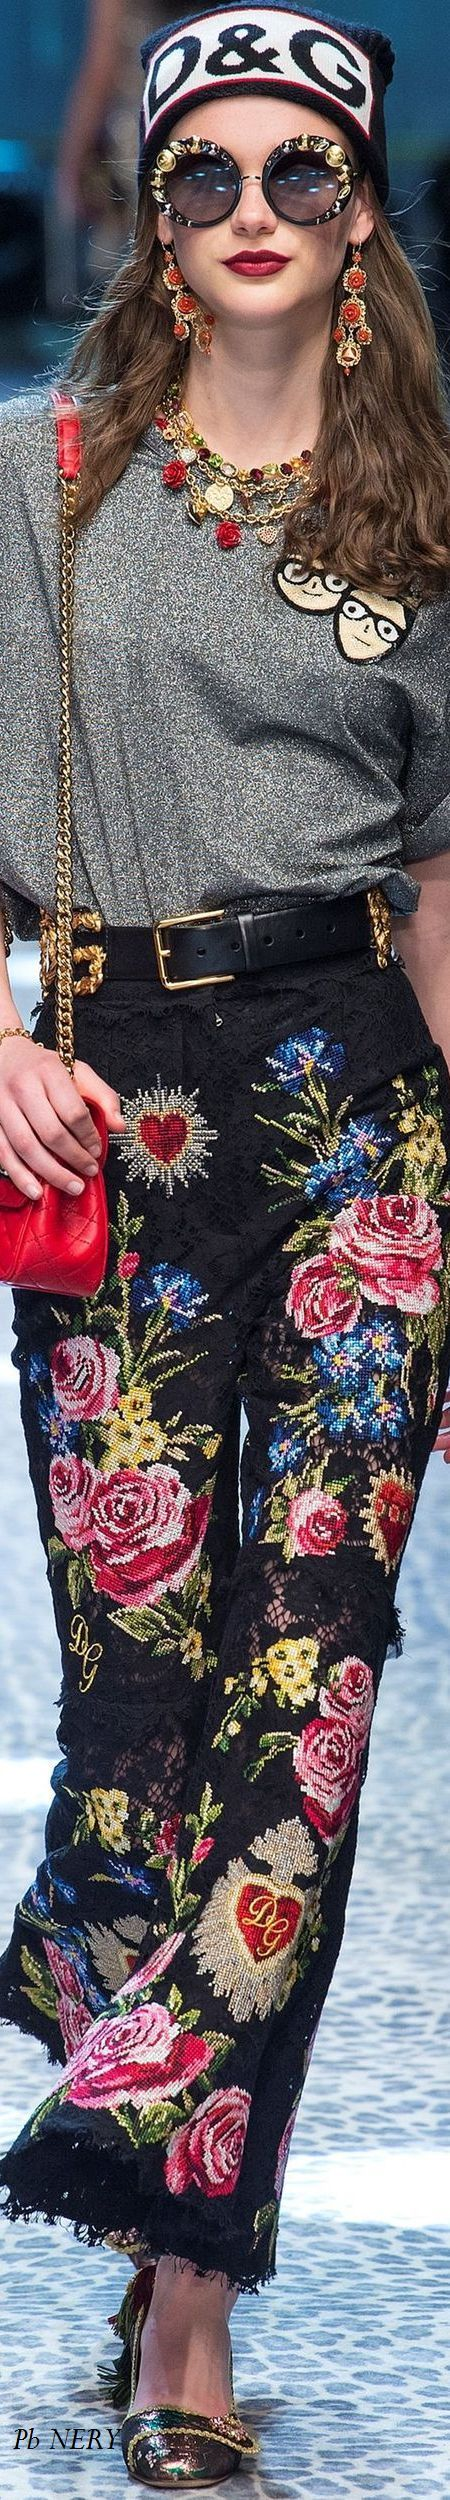 Dolce & Gabbana Fall 2017 RTW THANK YOU DINA, THIS IS FOR THE ROYAL RECOGNITION BOARD